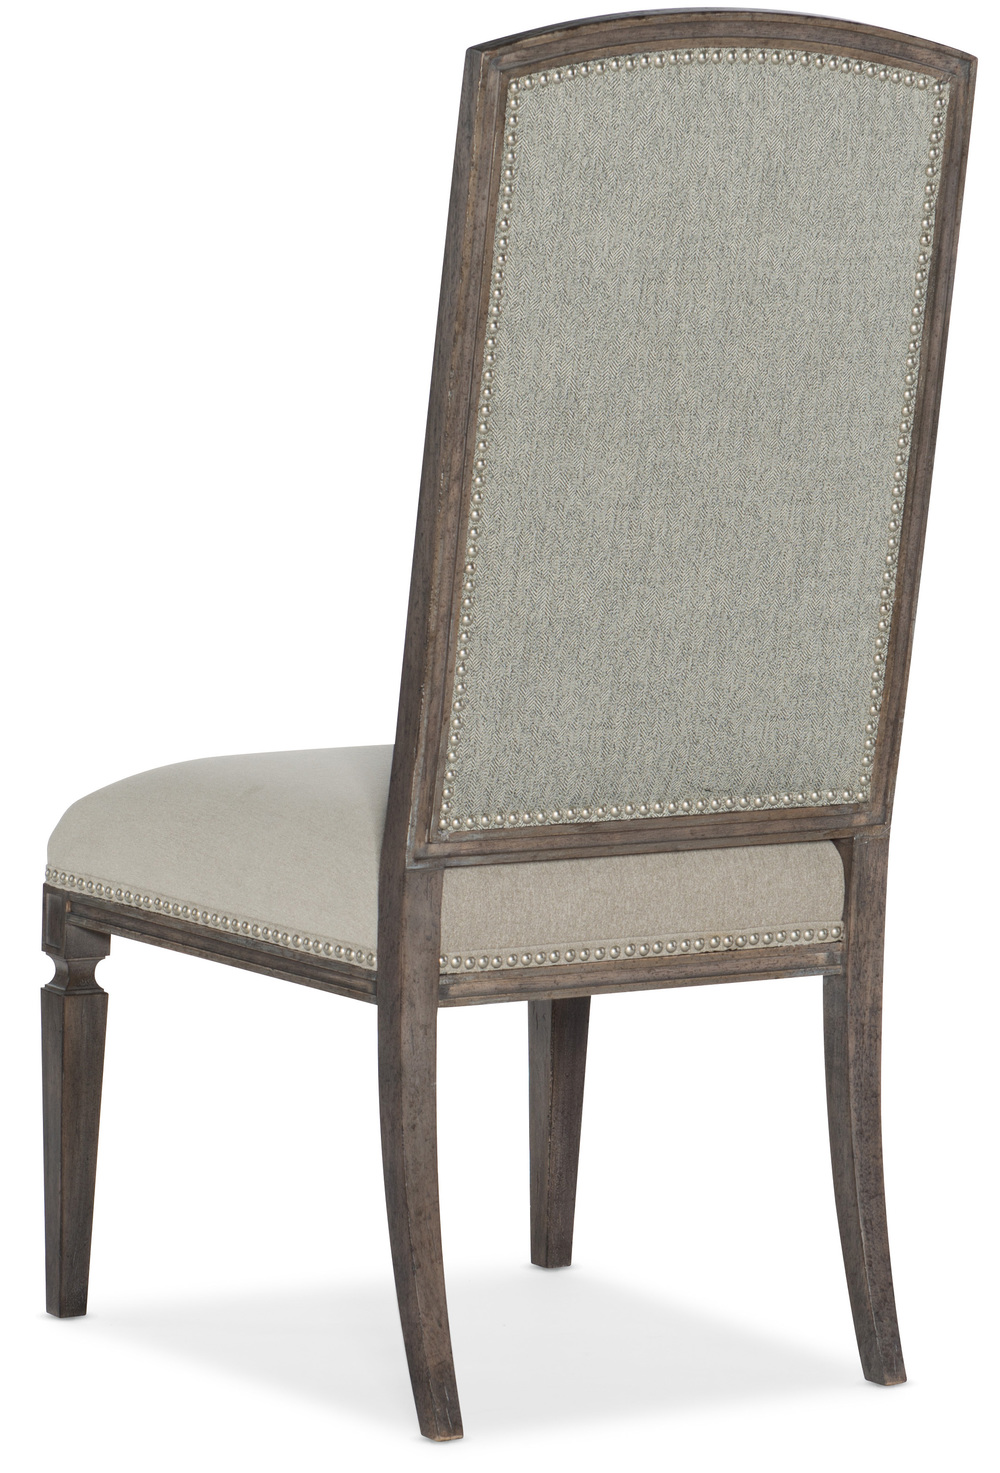 Hooker Furniture - Arched Upholstered Side Chair